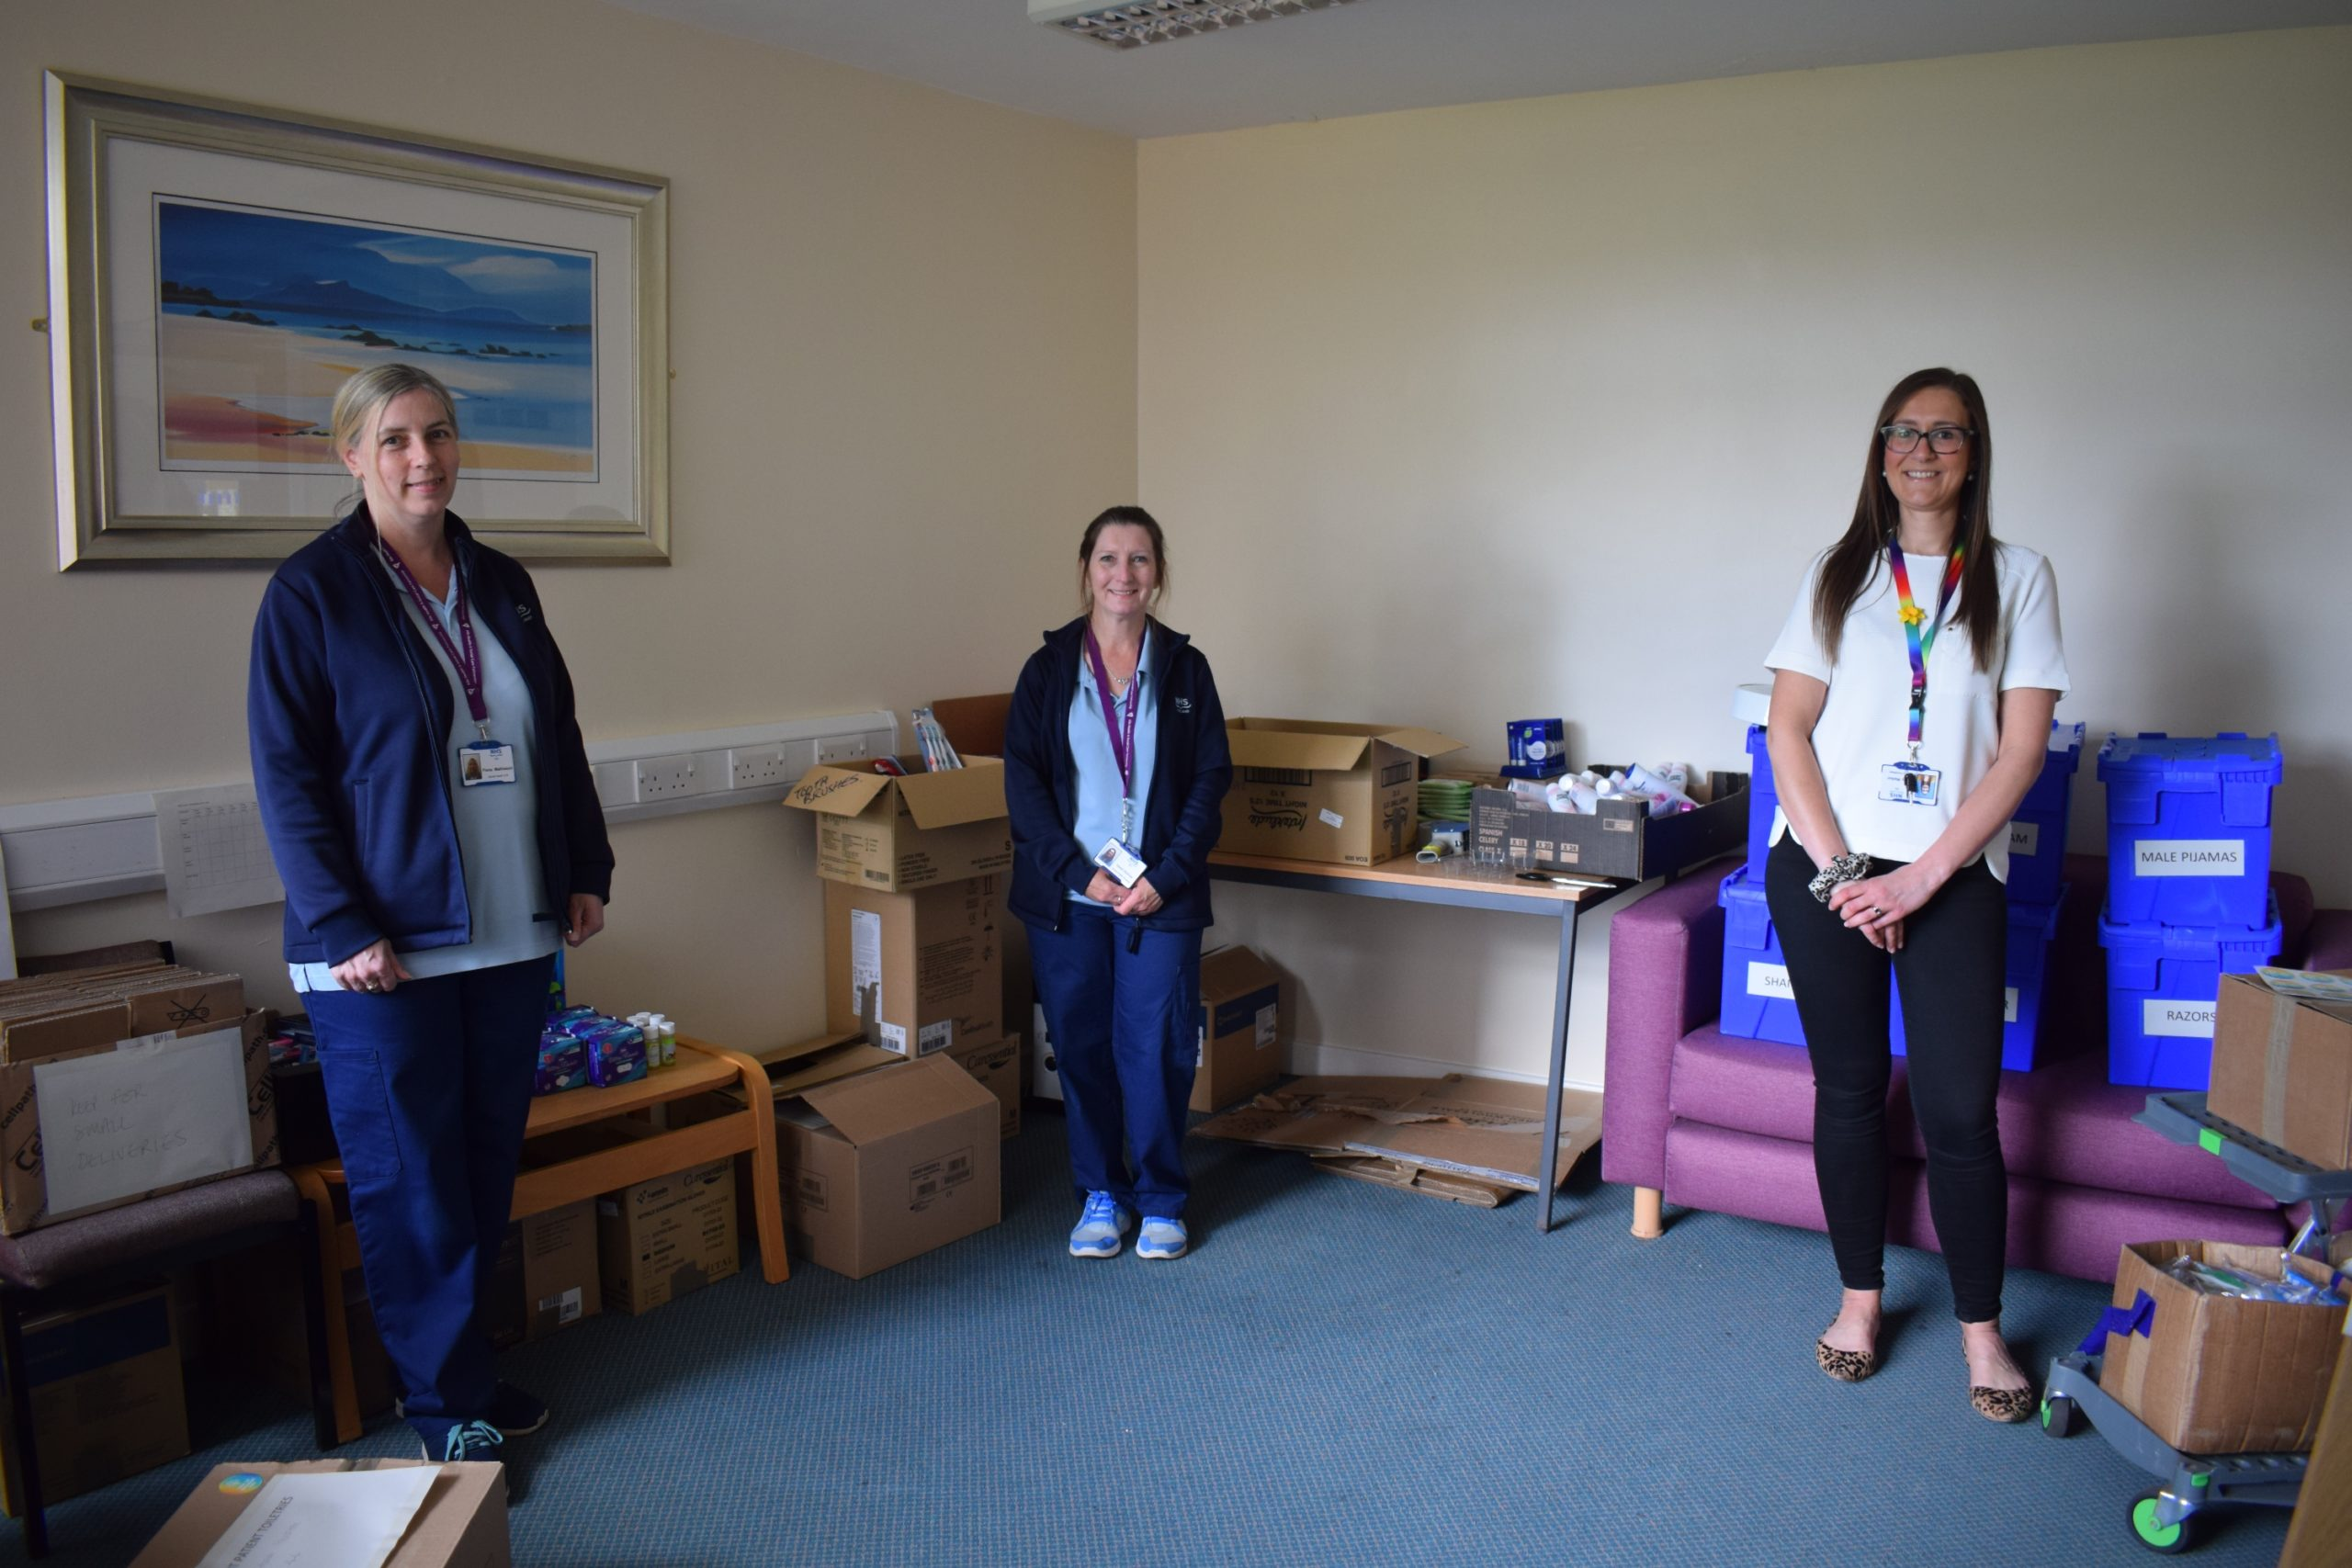 Photo Caption:- Members of the new team redeployed to distribute 'care boxes' to hospital wards across Fife.